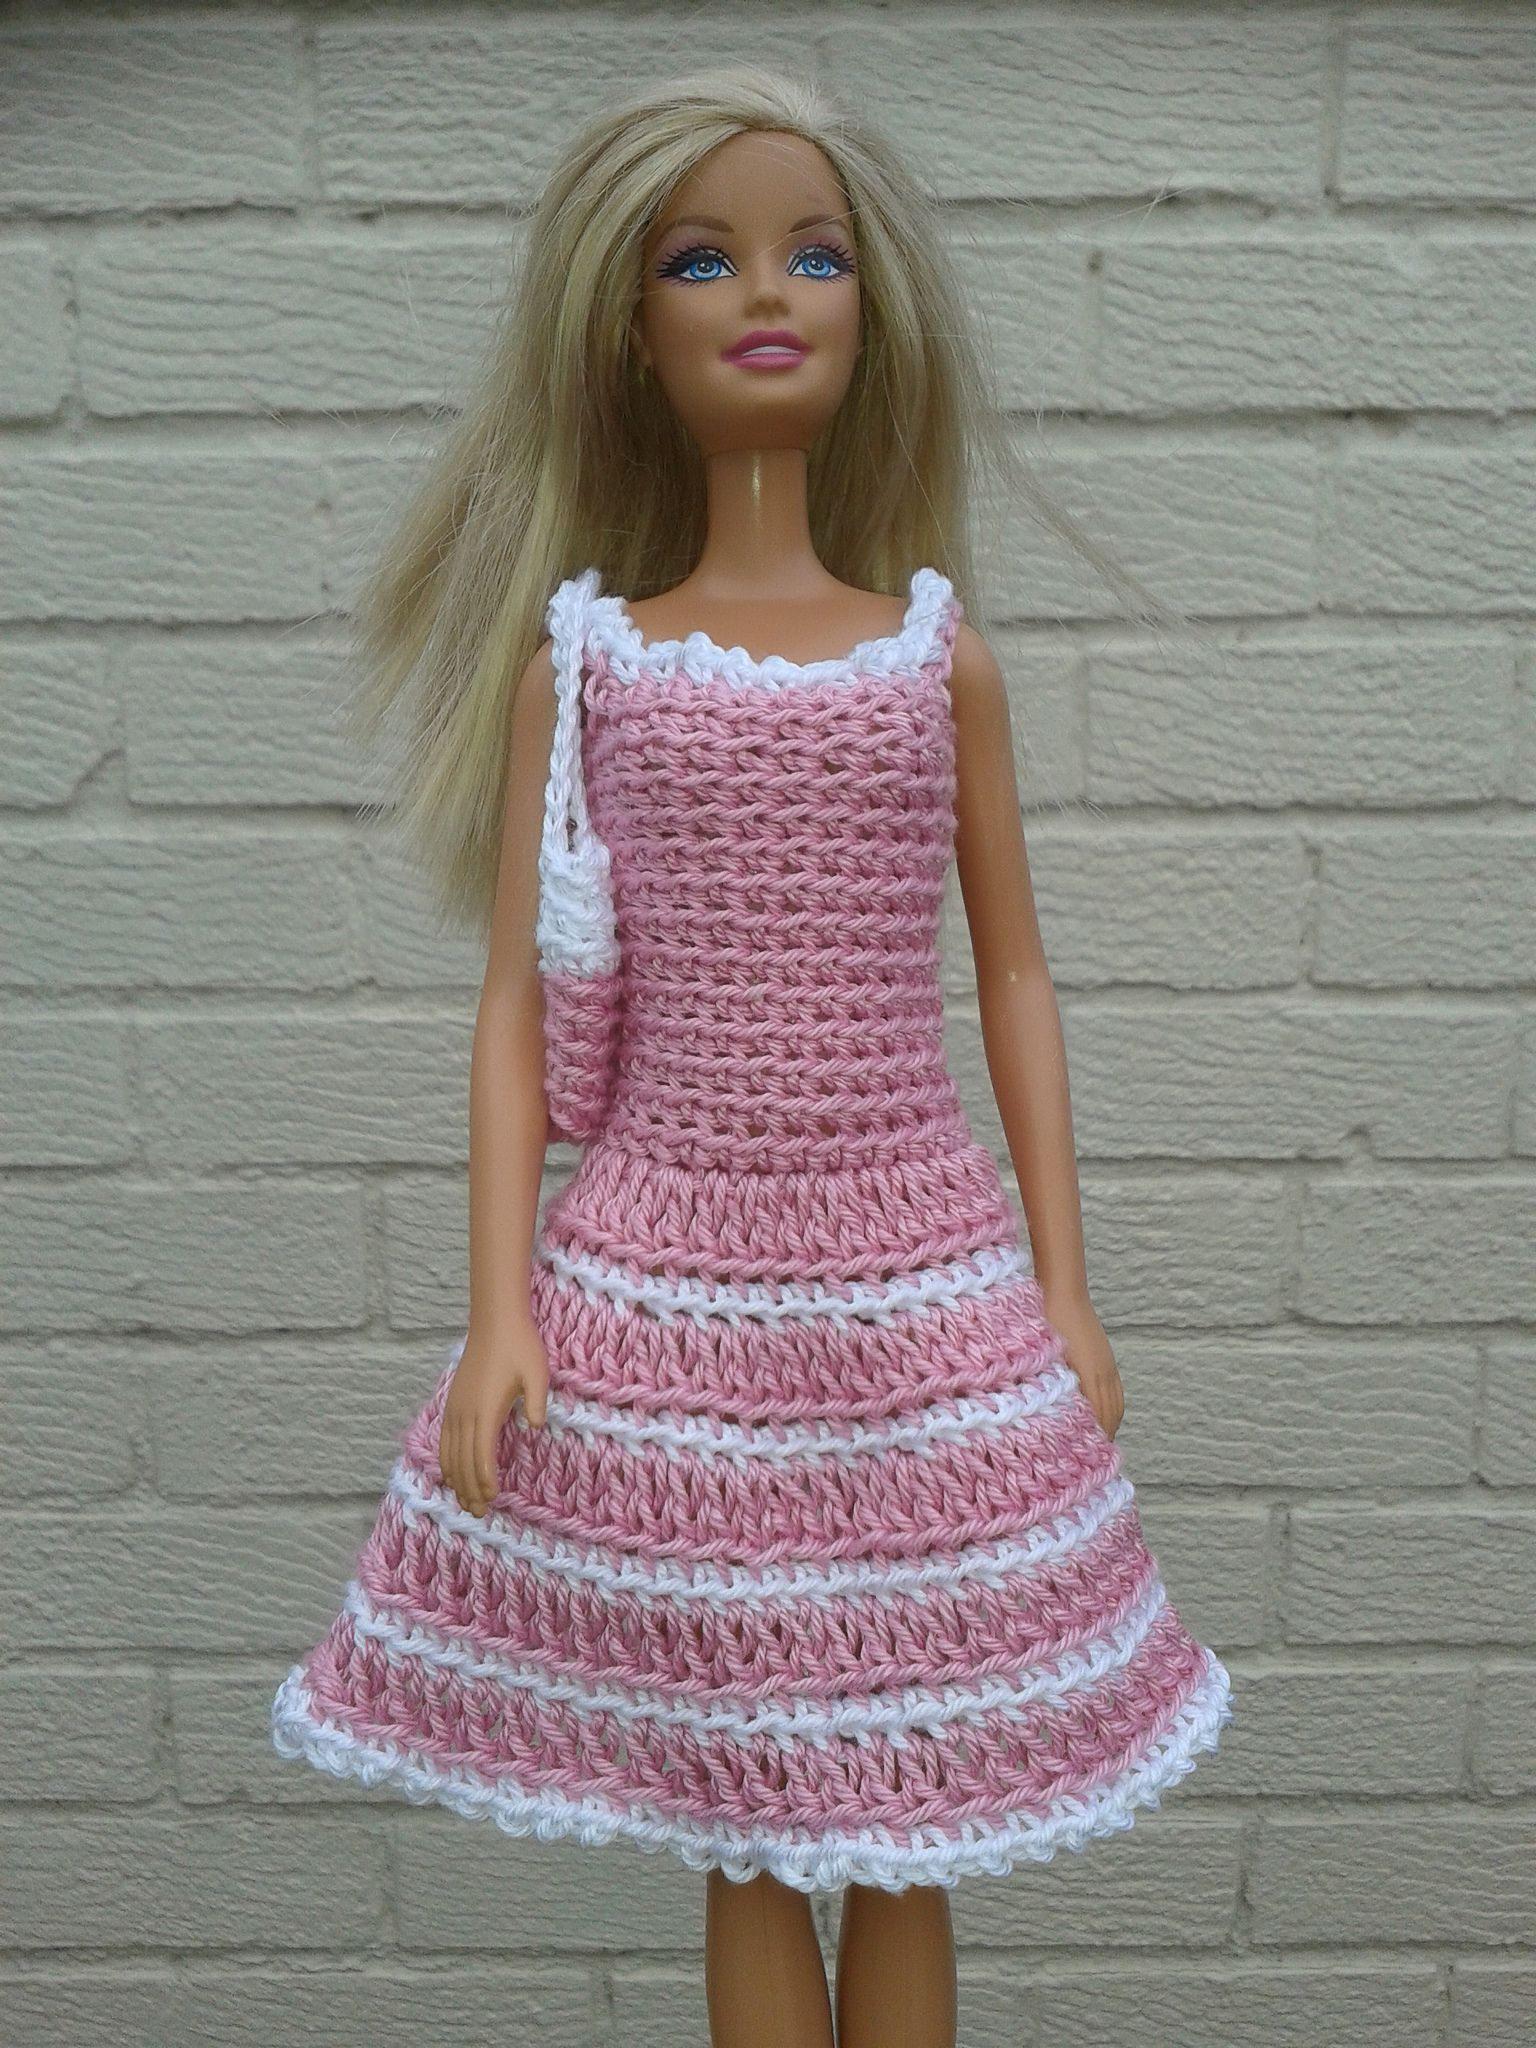 barbies crochet dress and bag | Puppenkleidung häkeln, Gehäkelte ...